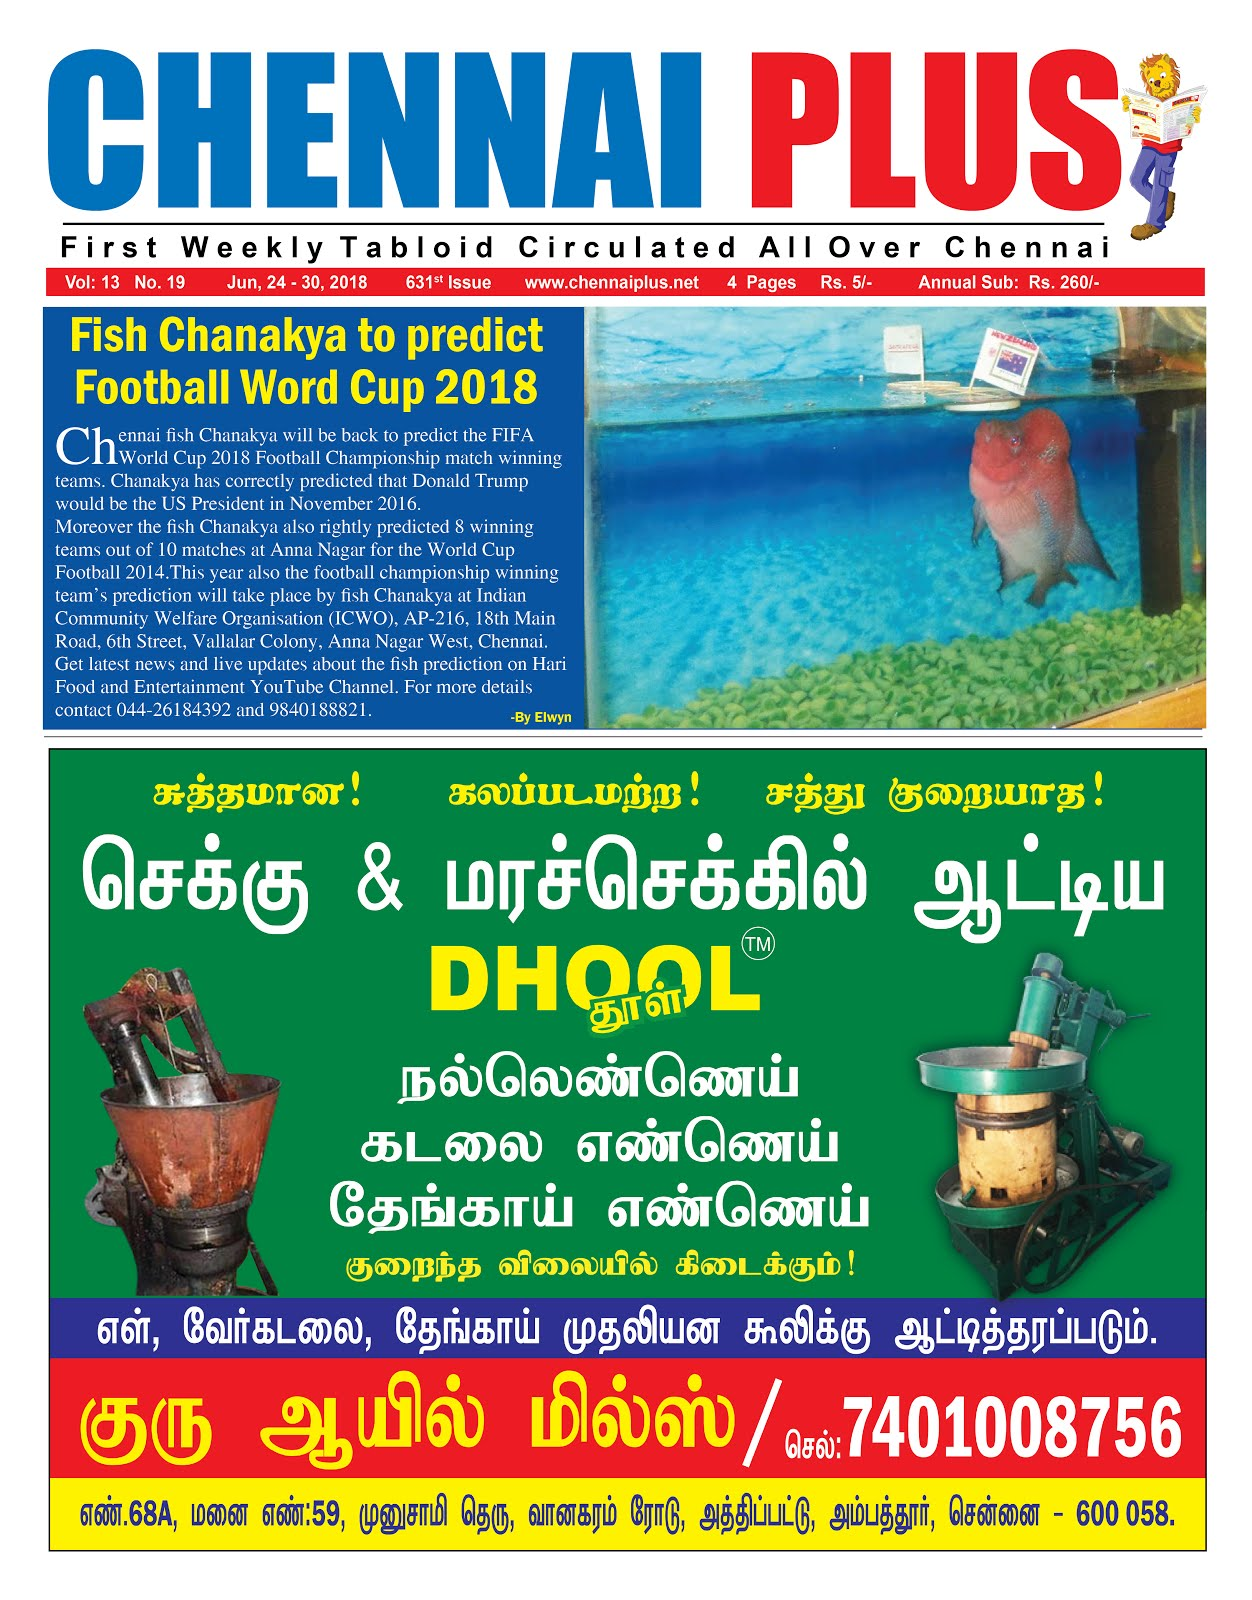 Chennai Plus_24.06.2018_Issue